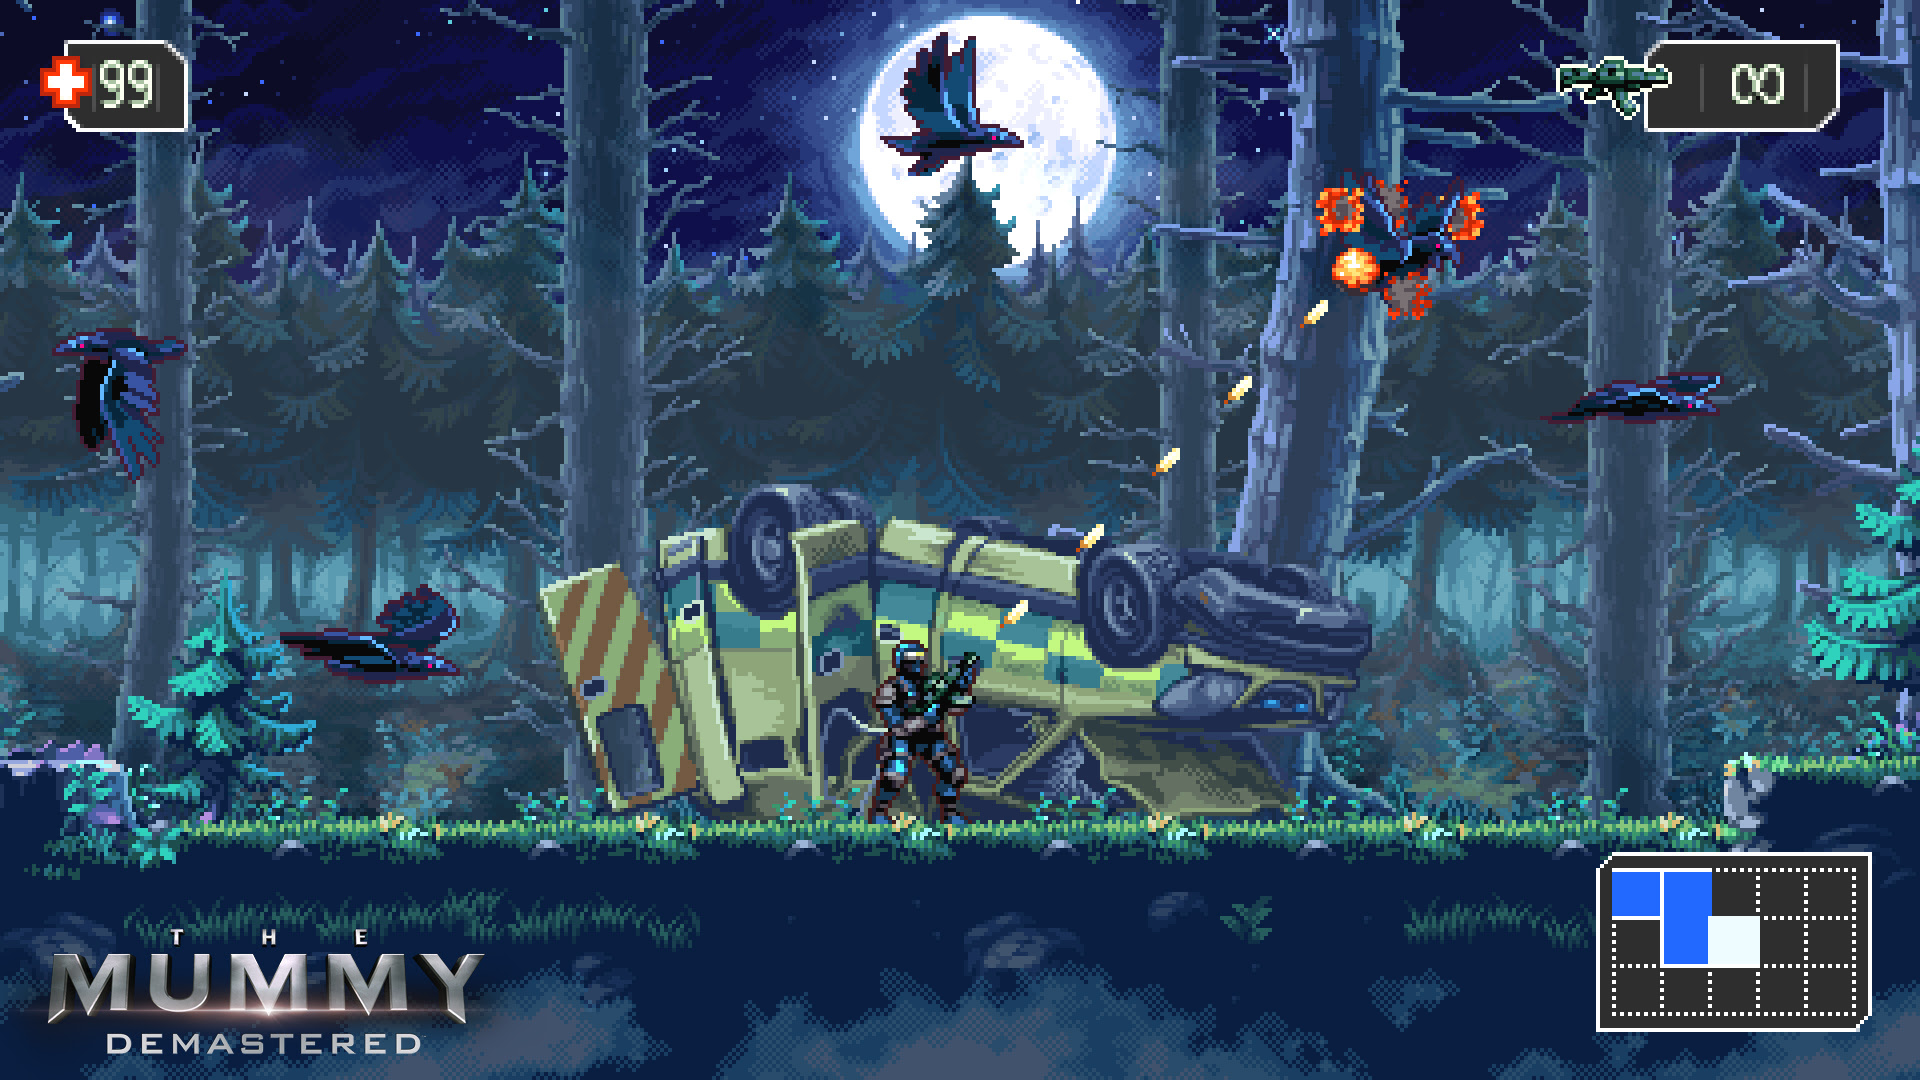 The Mummy Demastered is a WayForward jam screenshot